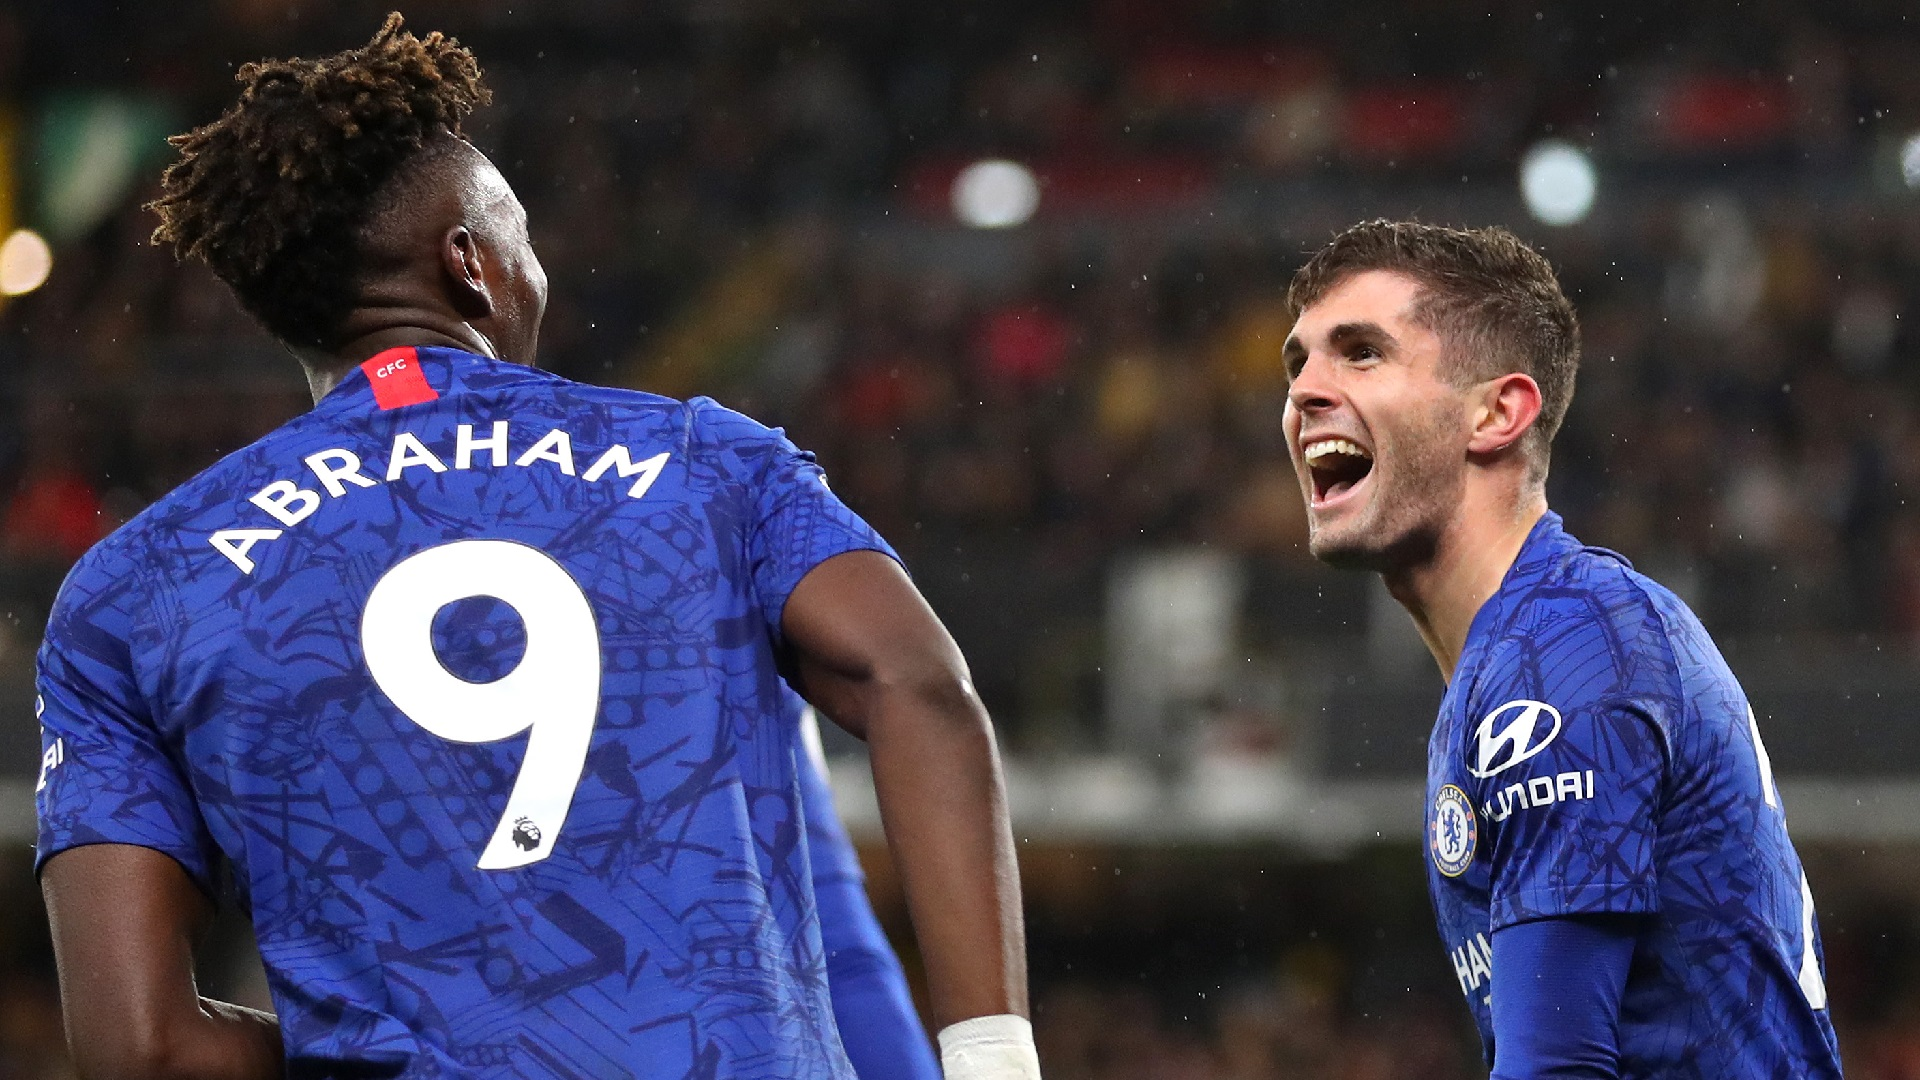 'It is so much fun' - Pulisic says Chelsea's young guns are loving life under Lampard